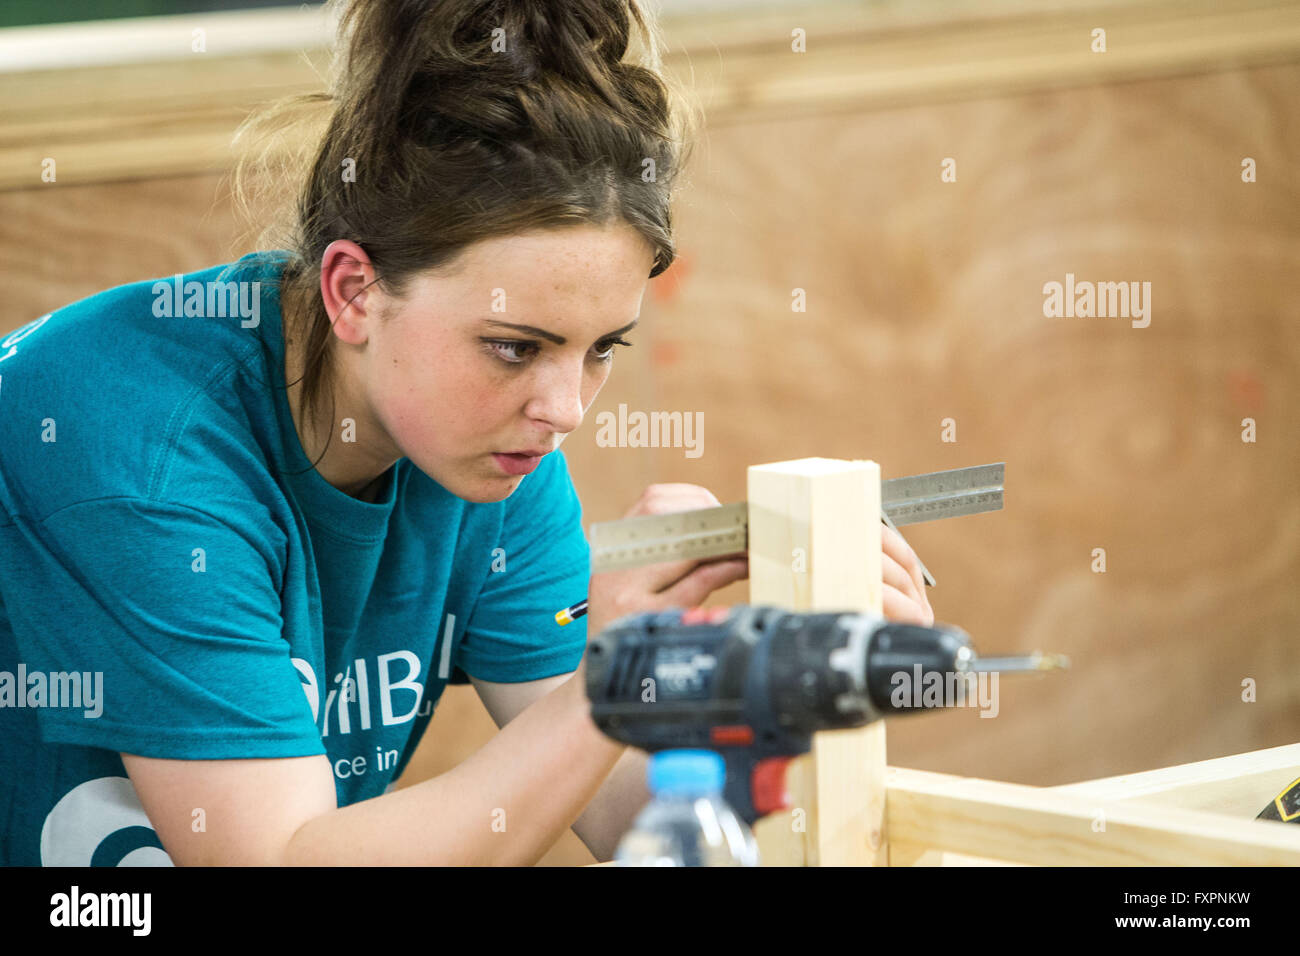 Female apprentices in the construction and engineering industry - Stock Image